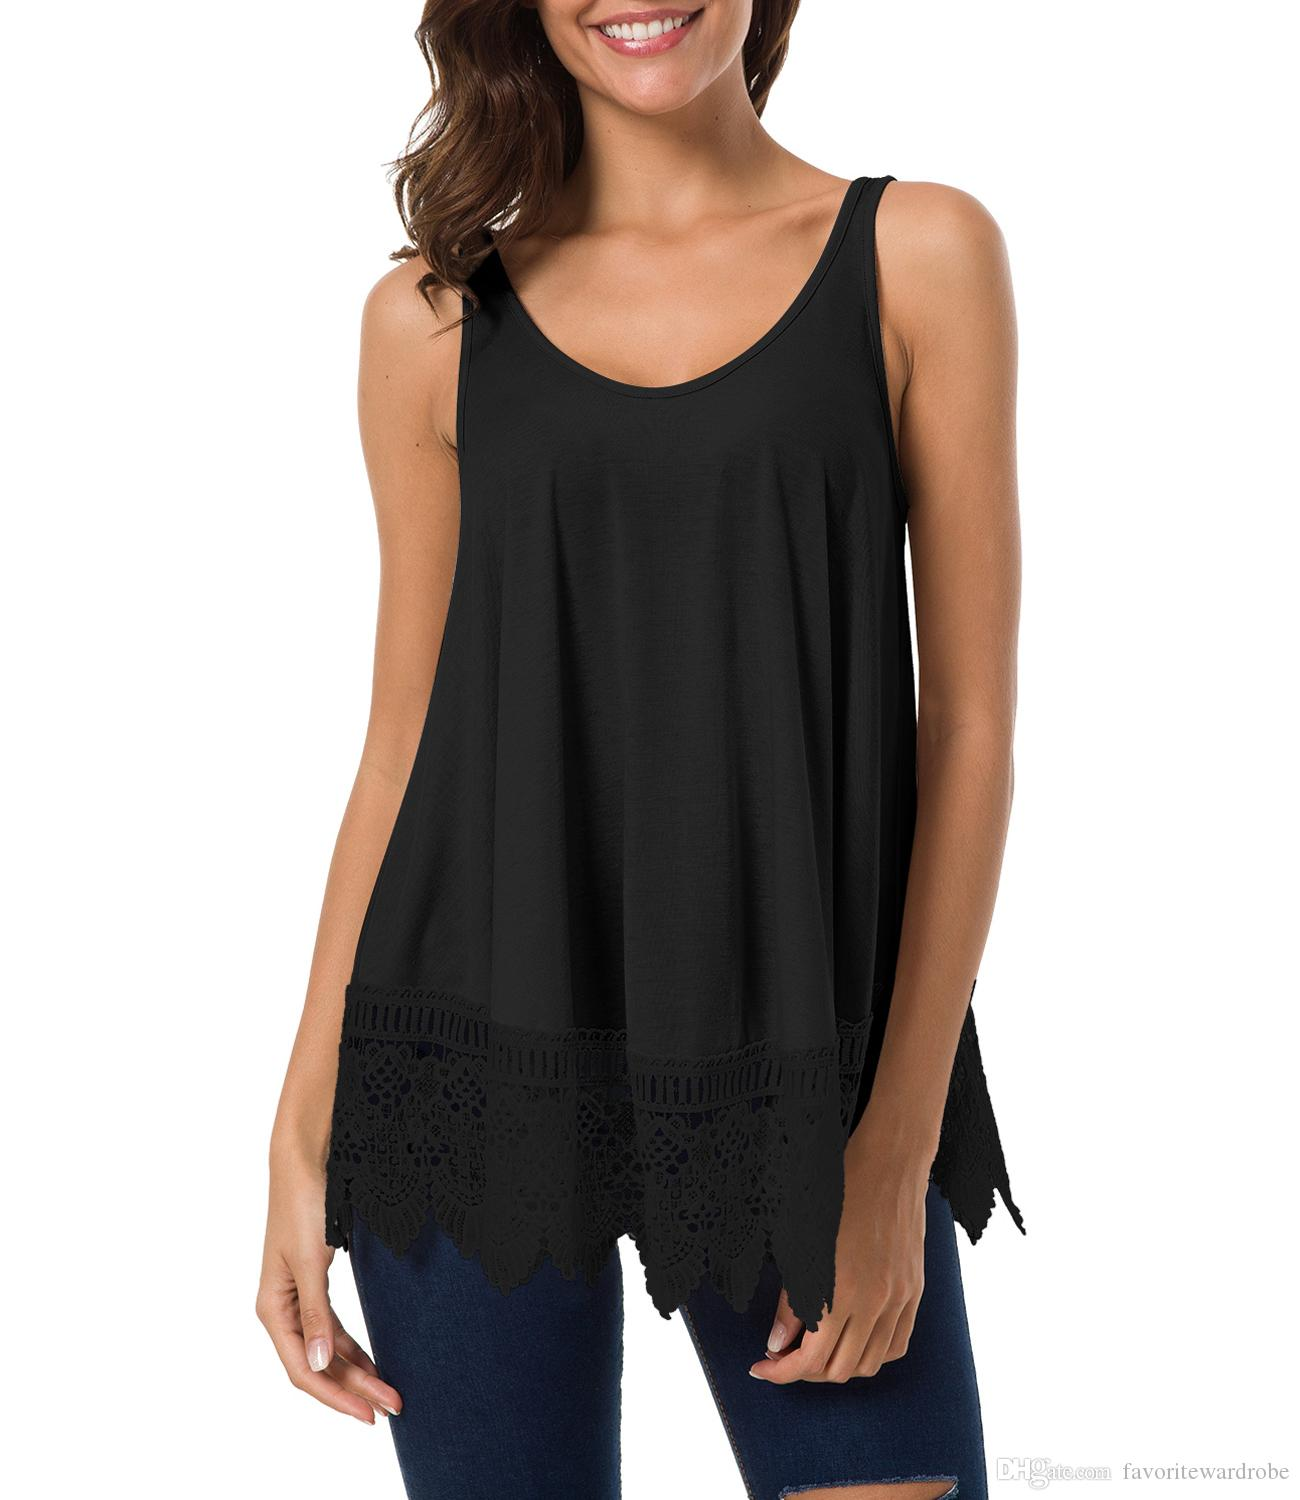 08847cc0171f0b 2019 Women S Casual Basic Lace Extender Tank Top Bottom Hem Vest Available  In US Stock From Favoritewardrobe